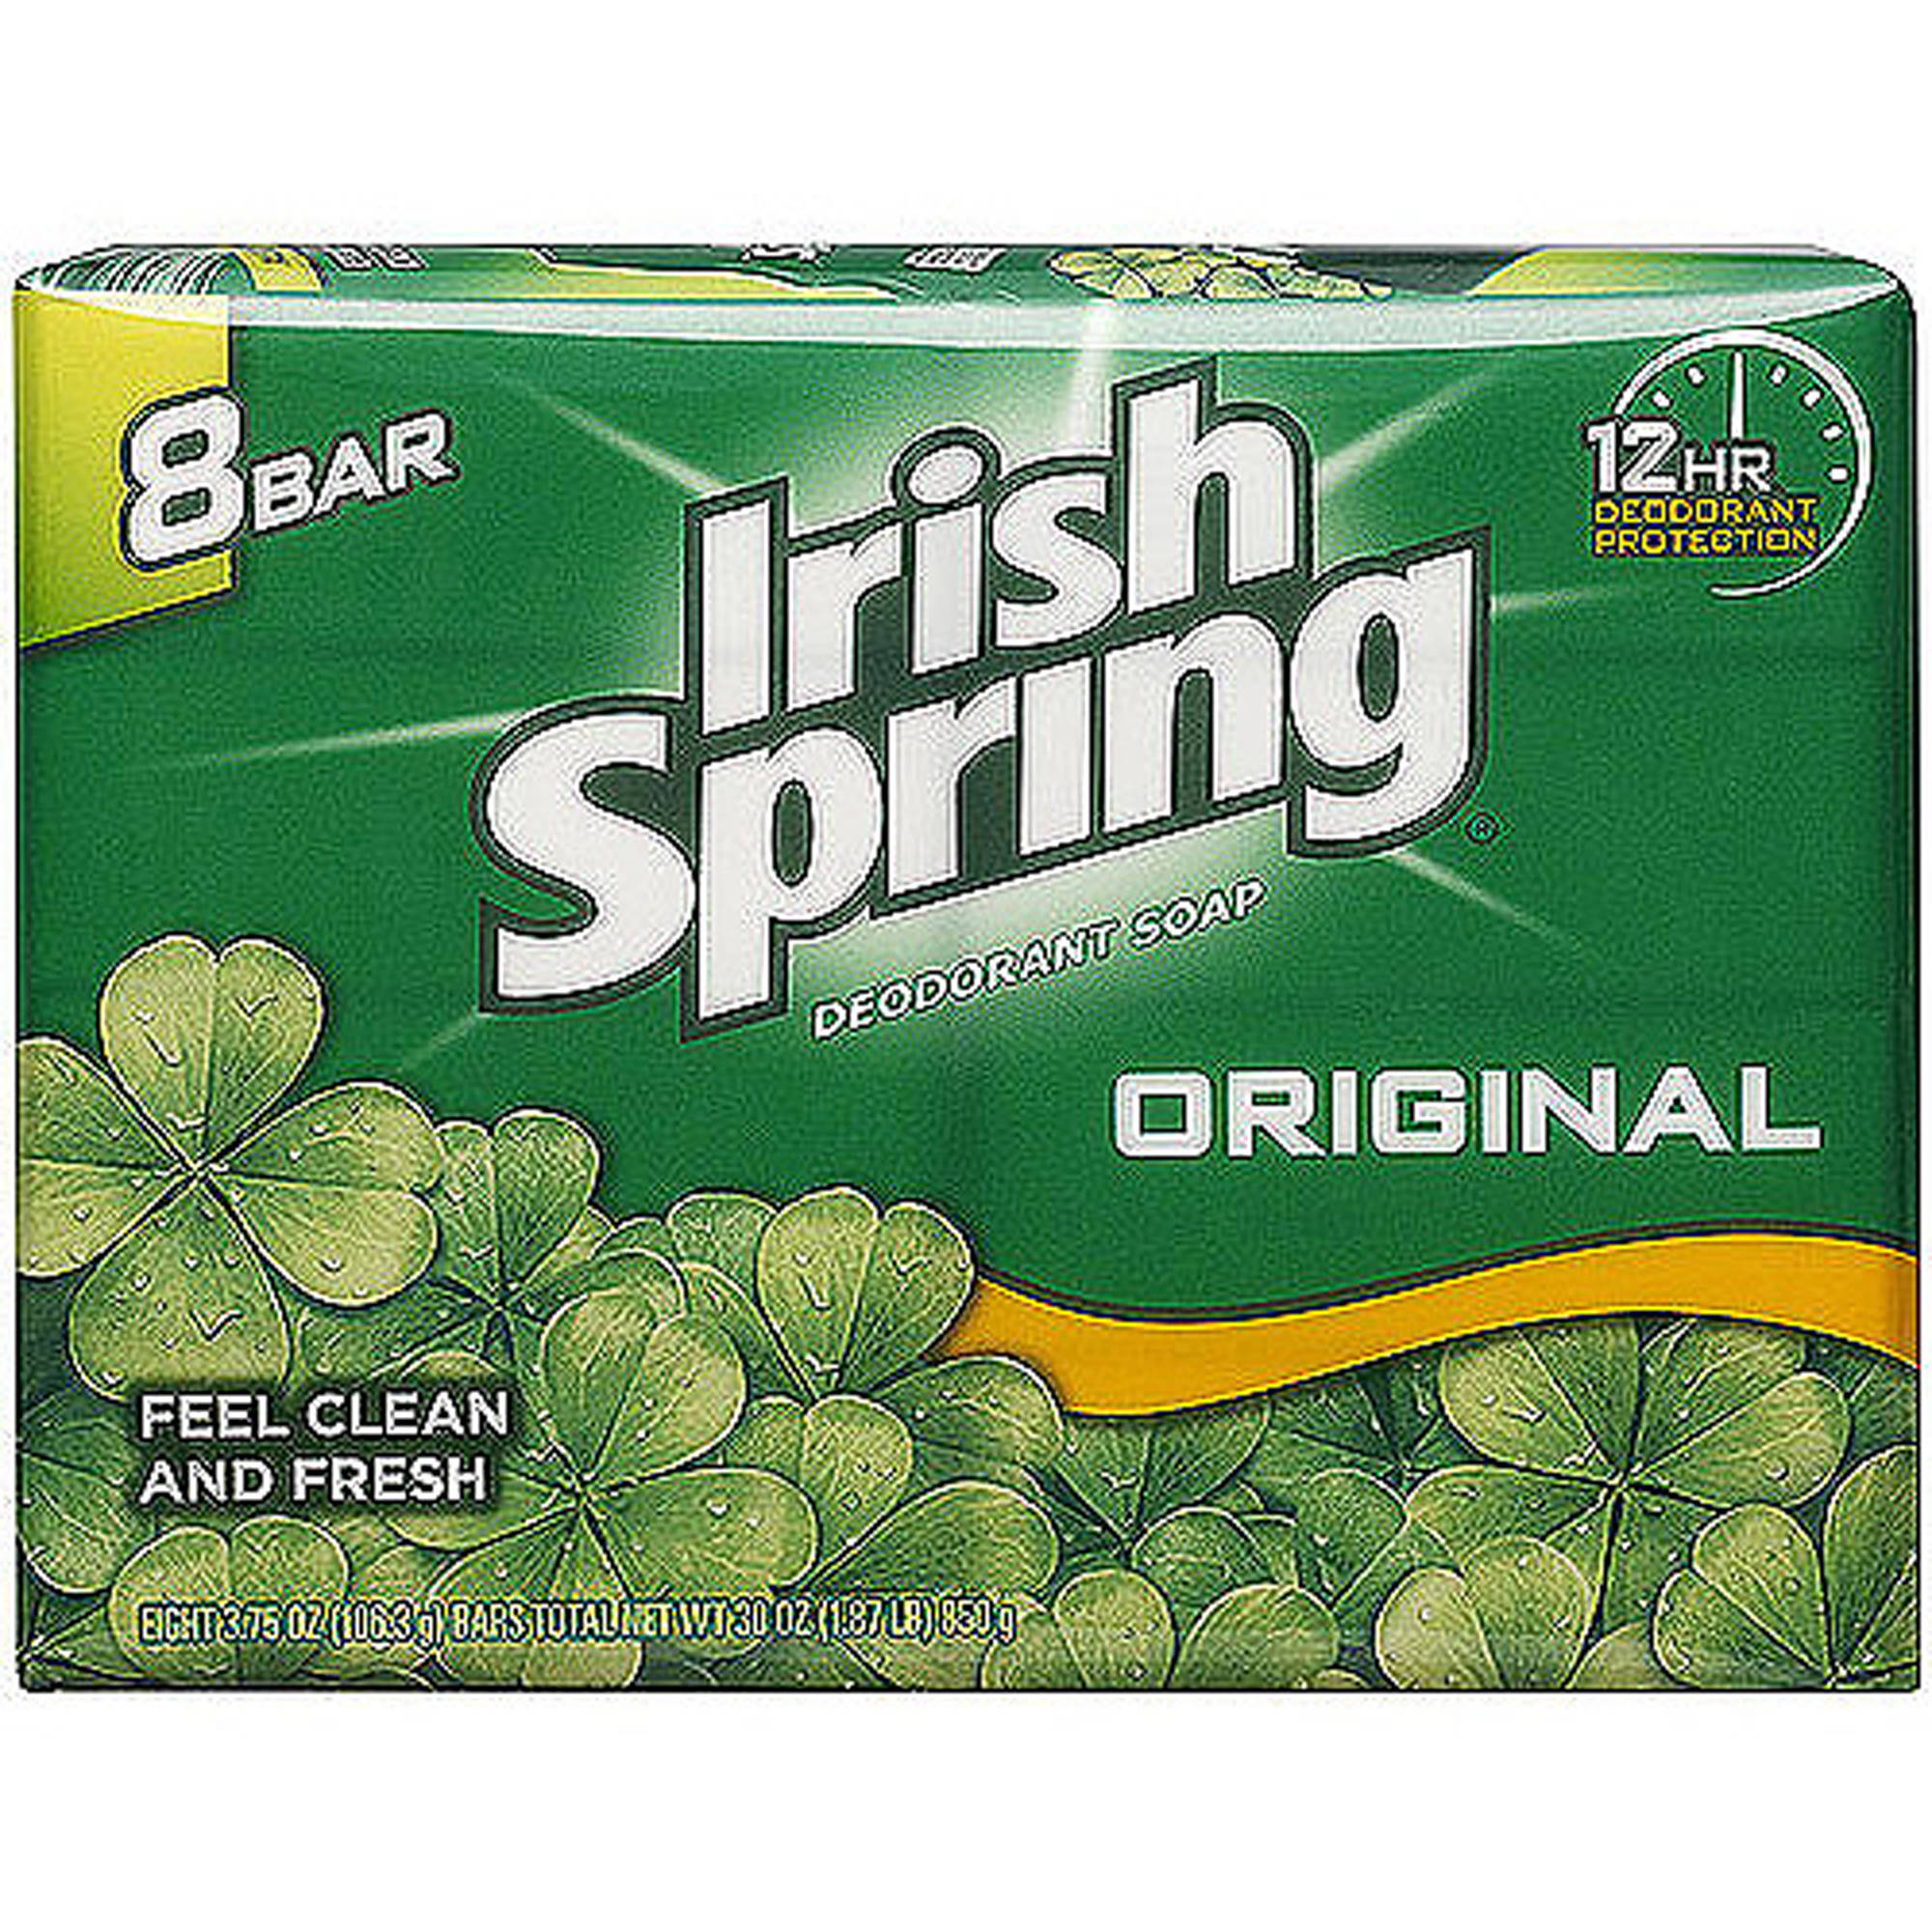 Irish Spring Deodorant Bar Soap, 3.75 oz, 8 ct